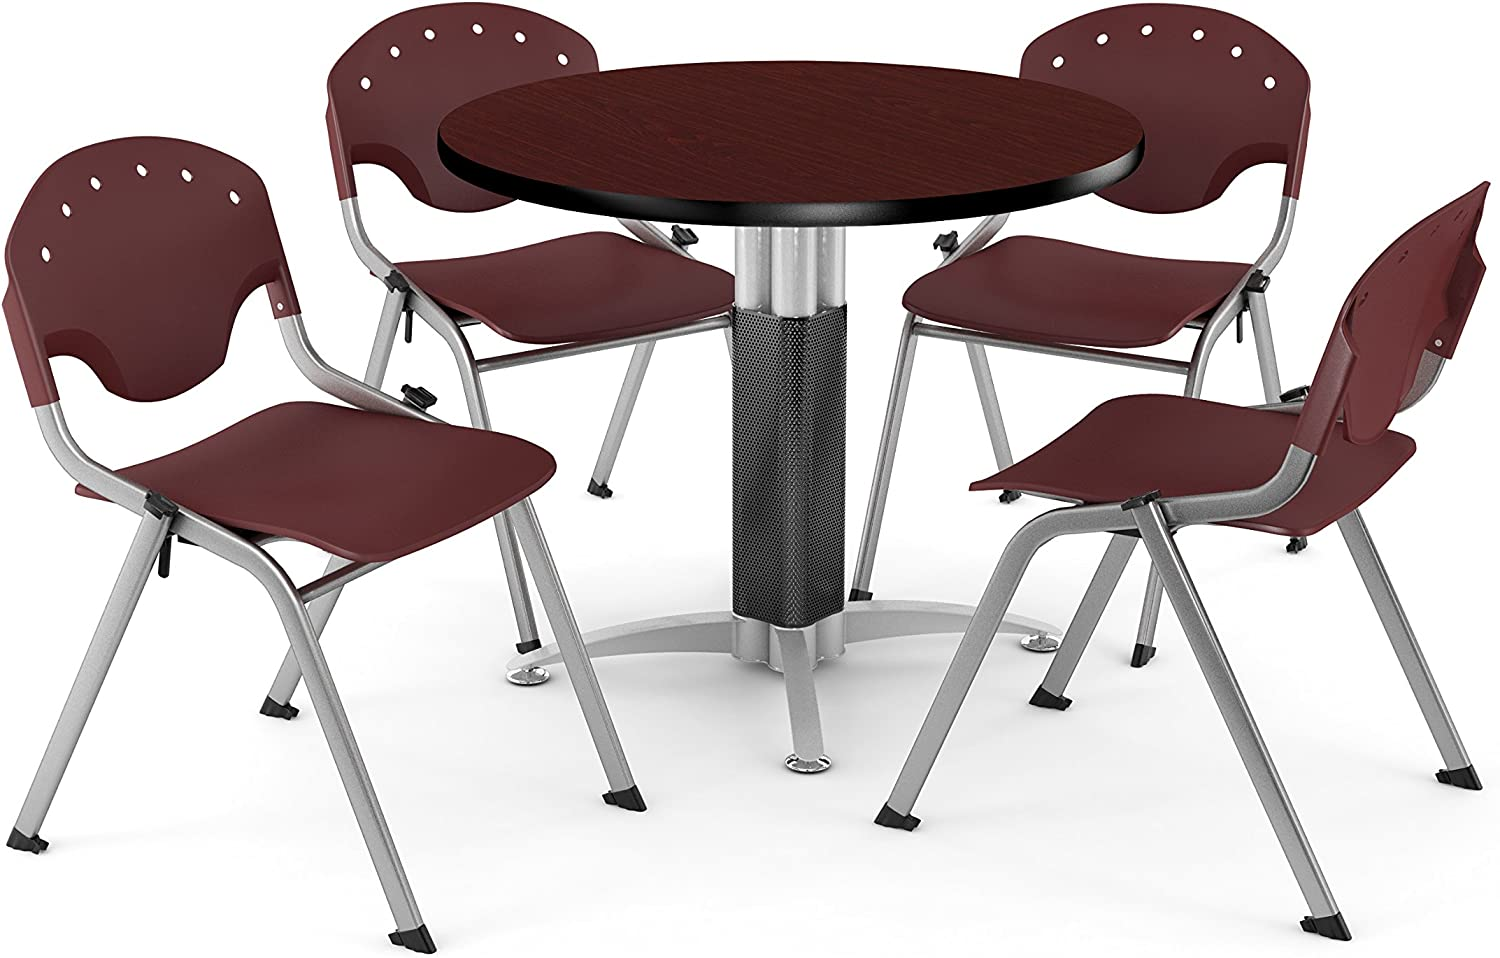 PKG-BRK-023-0015 42 Round Metal Mesh Base Multi-Purpose Table in Mahogany 4 Rico Stacking Chairs in Burgundy OFM Core Collection Breakroom Bundle